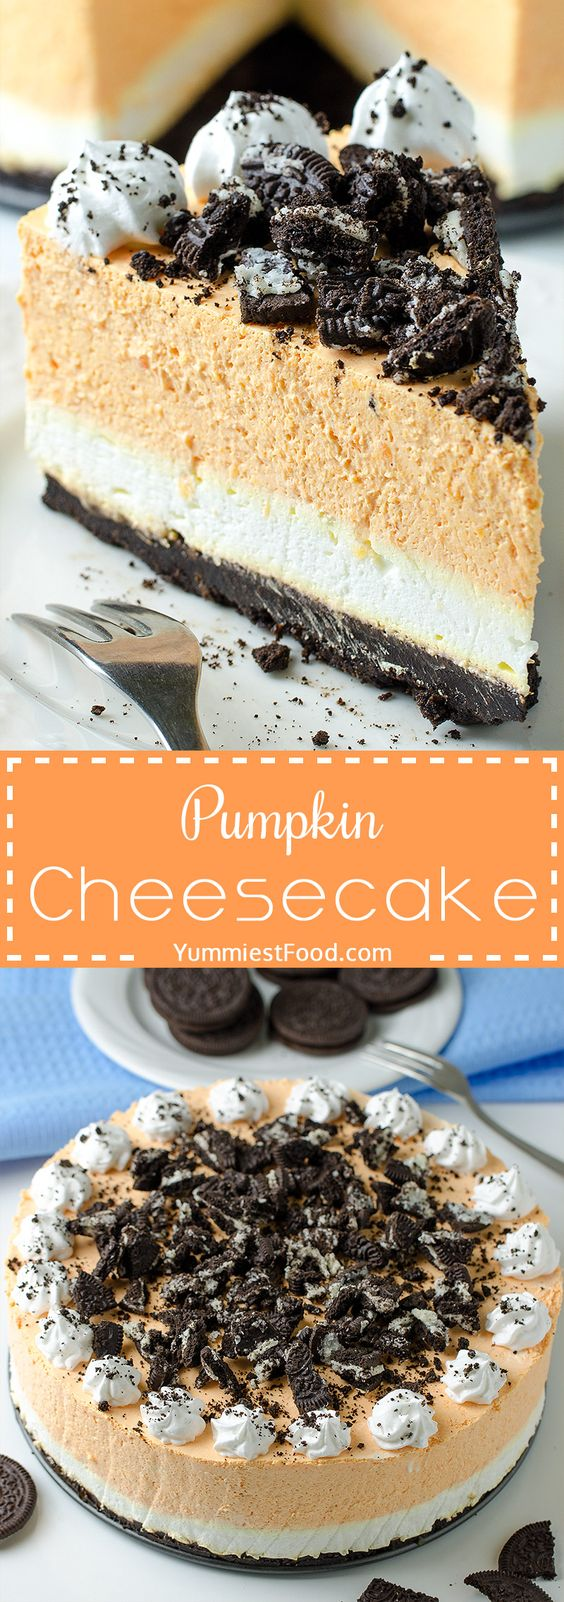 PUMPKIN CHEESECAKE WITH OREO CRUST - NO BAKE – No Thanksgiving table is complete without pumpkin cheesecake! This perfect NO BAKE recipe is creamy, delicious and so very good! The perfect dessert for your Thanksgiving dinner party!